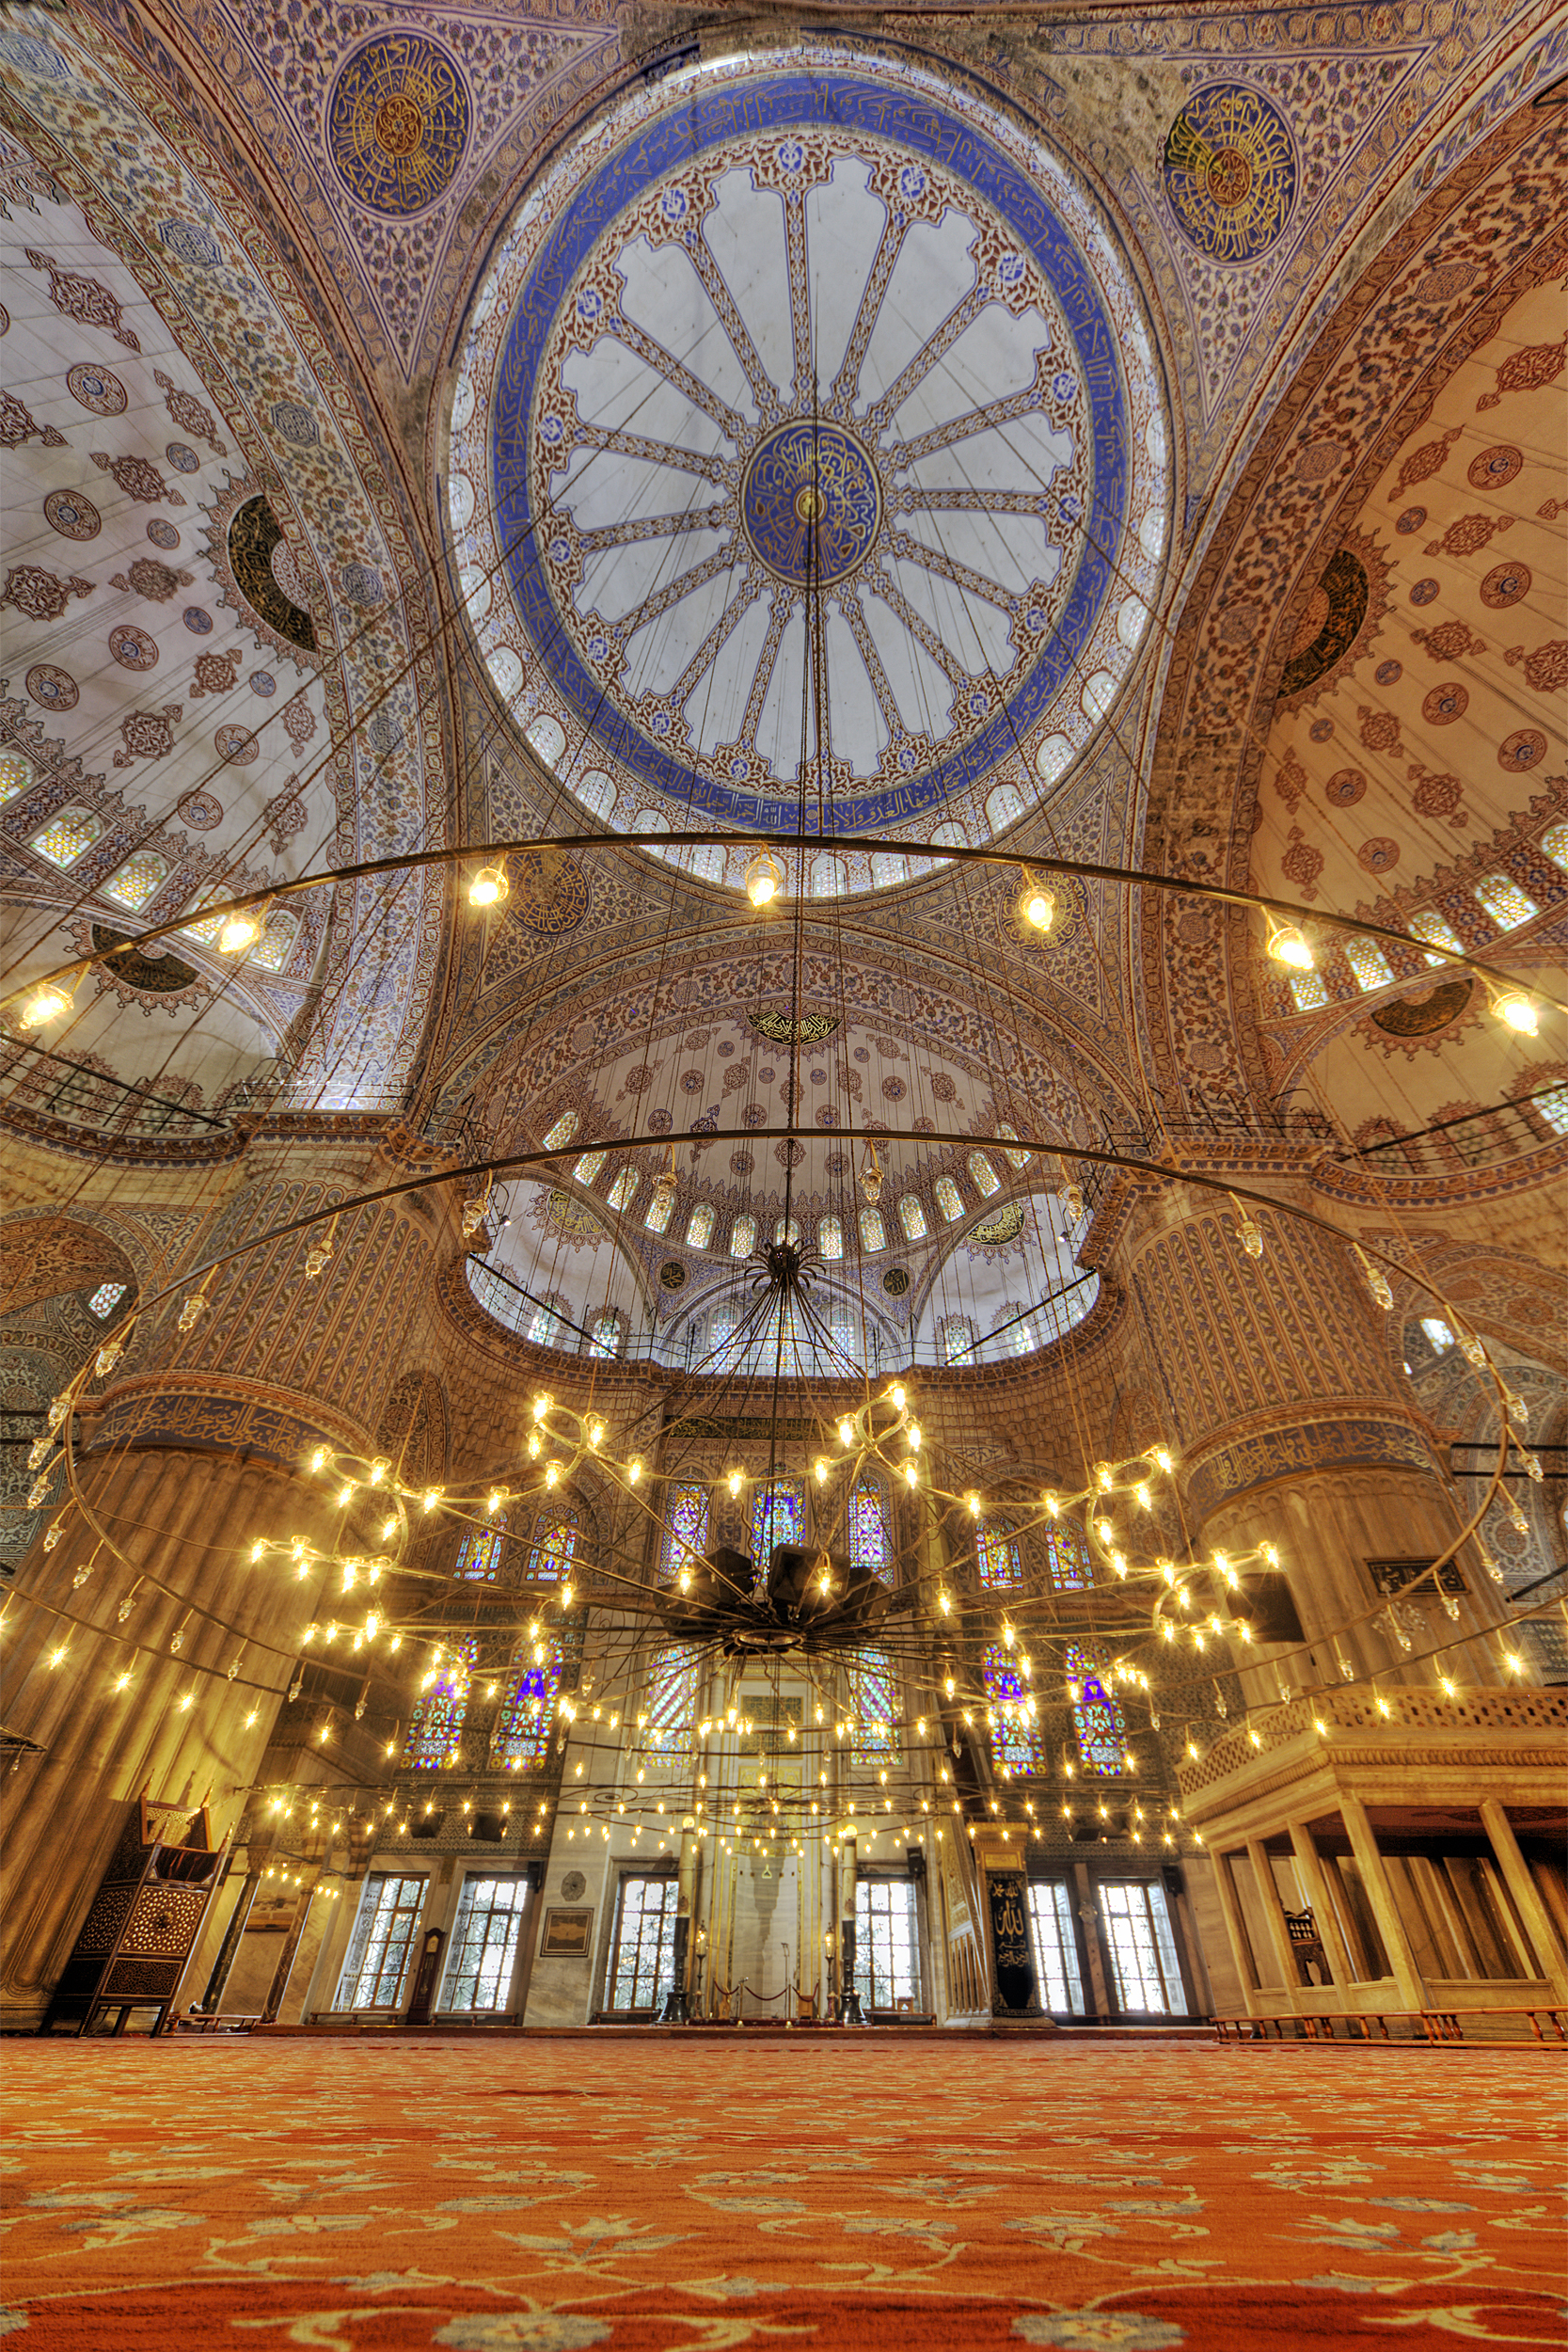 Yeni Mosque (New Mosque), Istanbul, Turkey